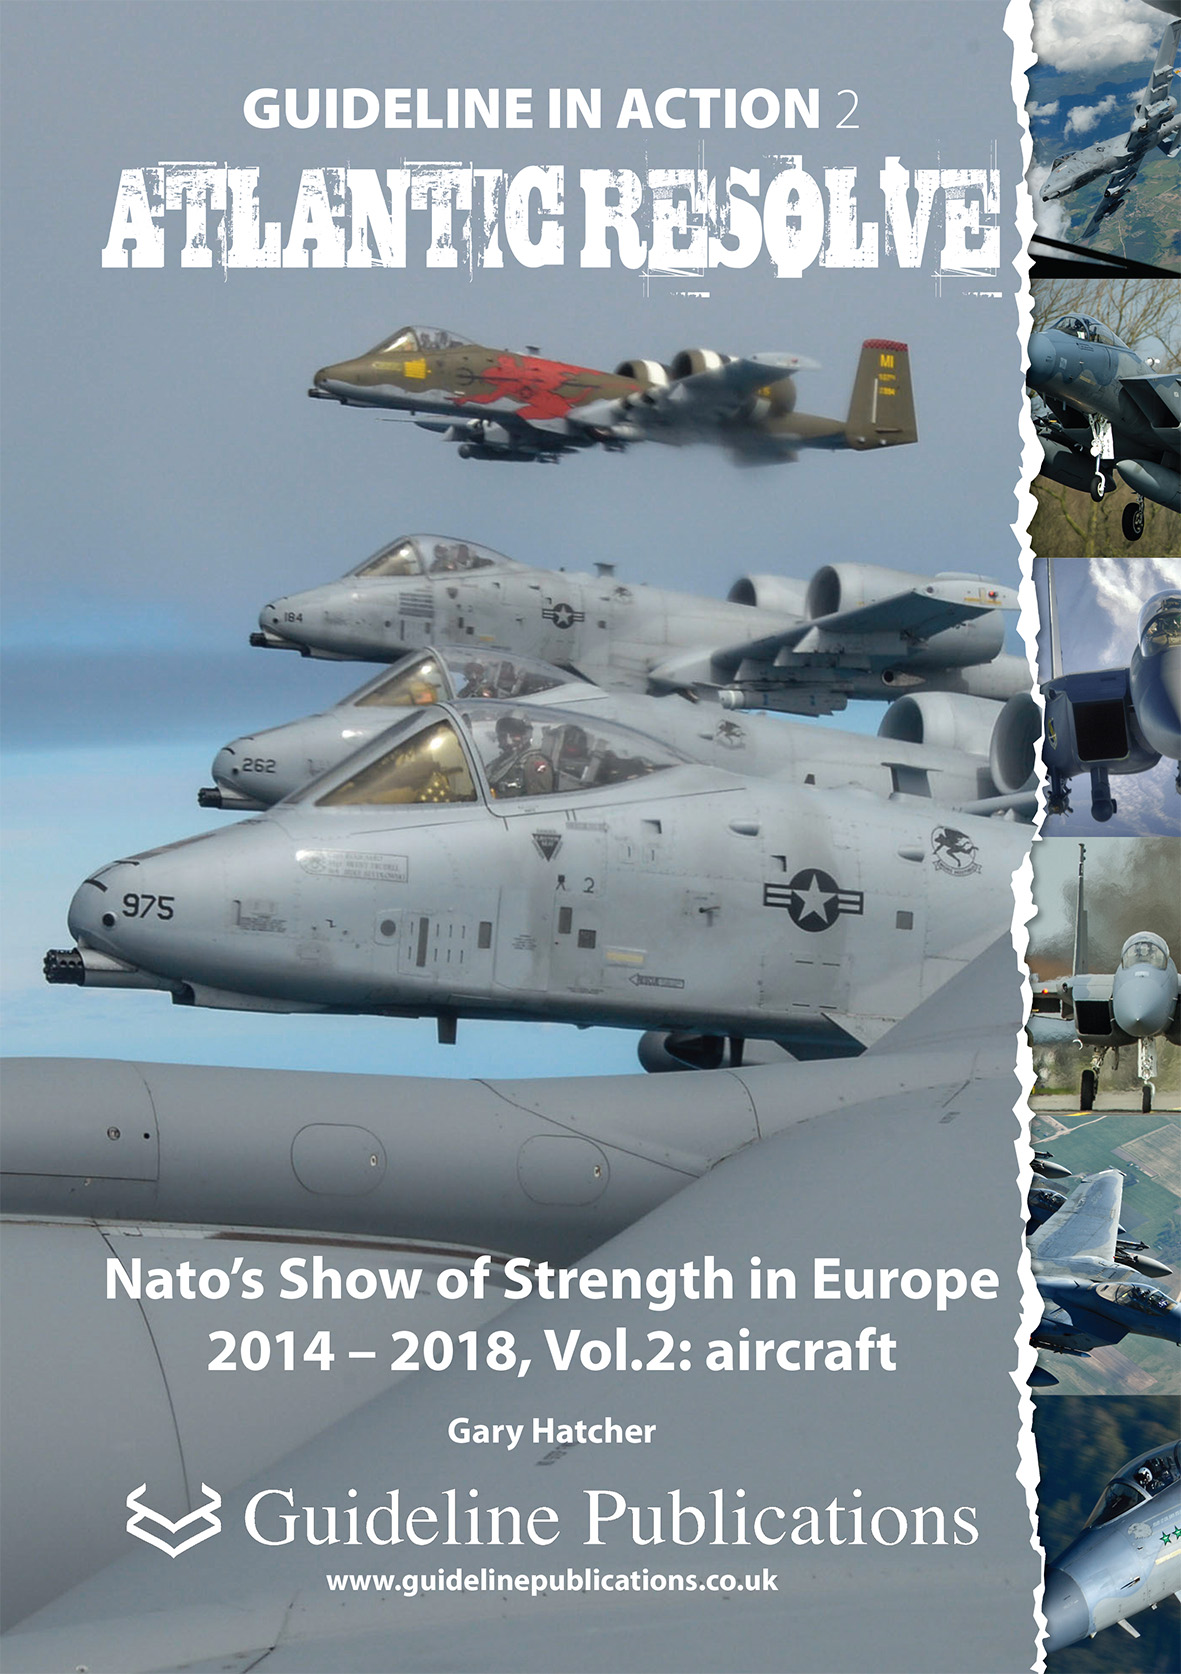 Guideline Publications Guideline in Action no 2 Atlantic Resolve NATO's show of strength in Europe 2014-2020